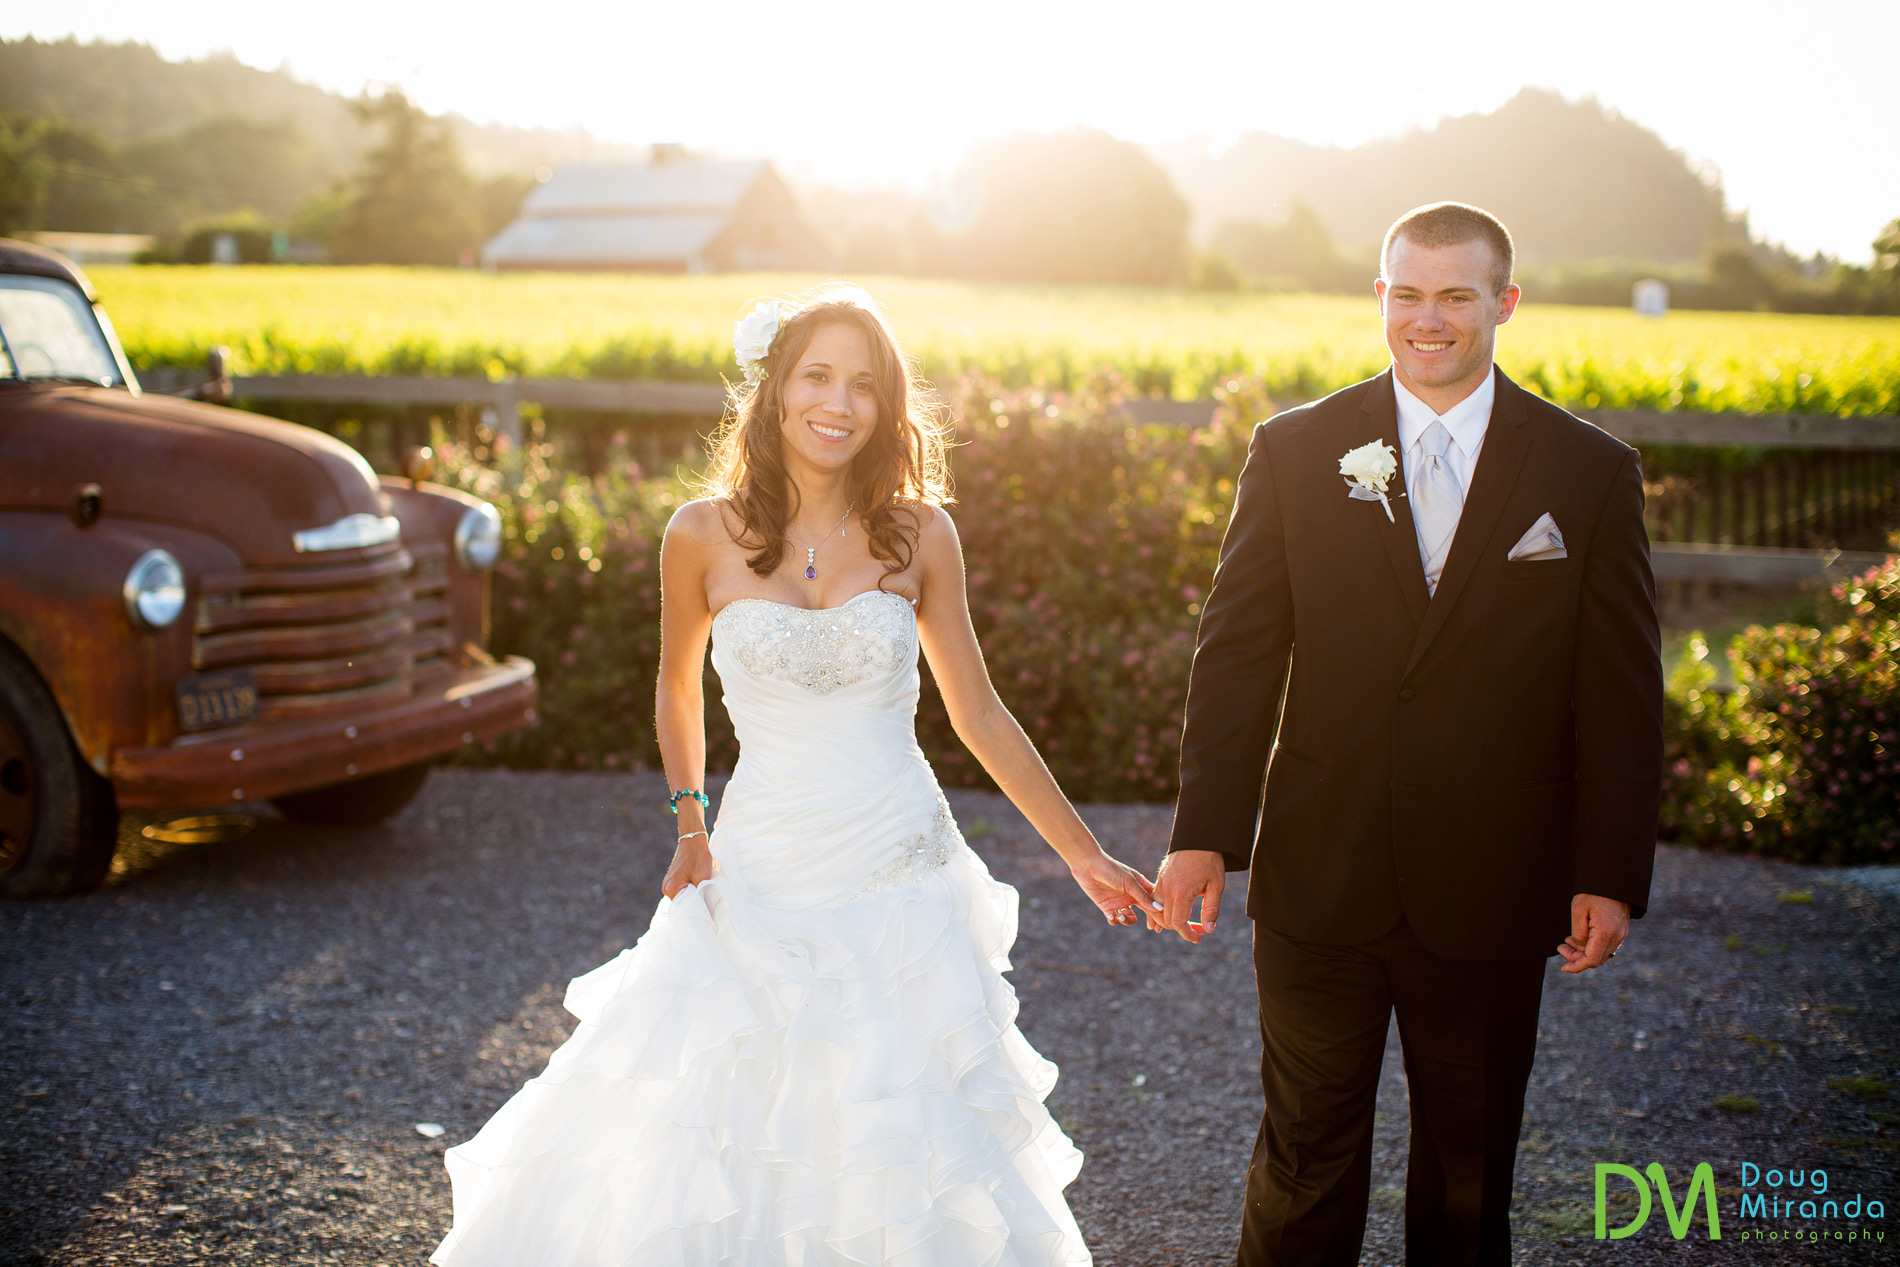 The afternoon light was perfect at the geyserville inn for their wedding photos.